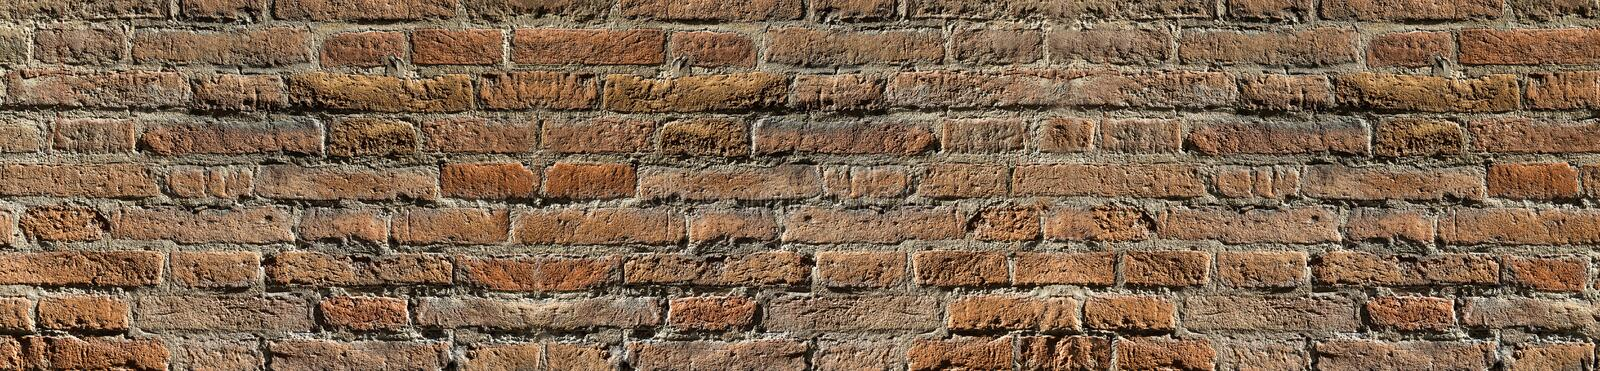 Vintage brick wall texture in contrast lighting for design. Panoramic background for text and image.  stock photo